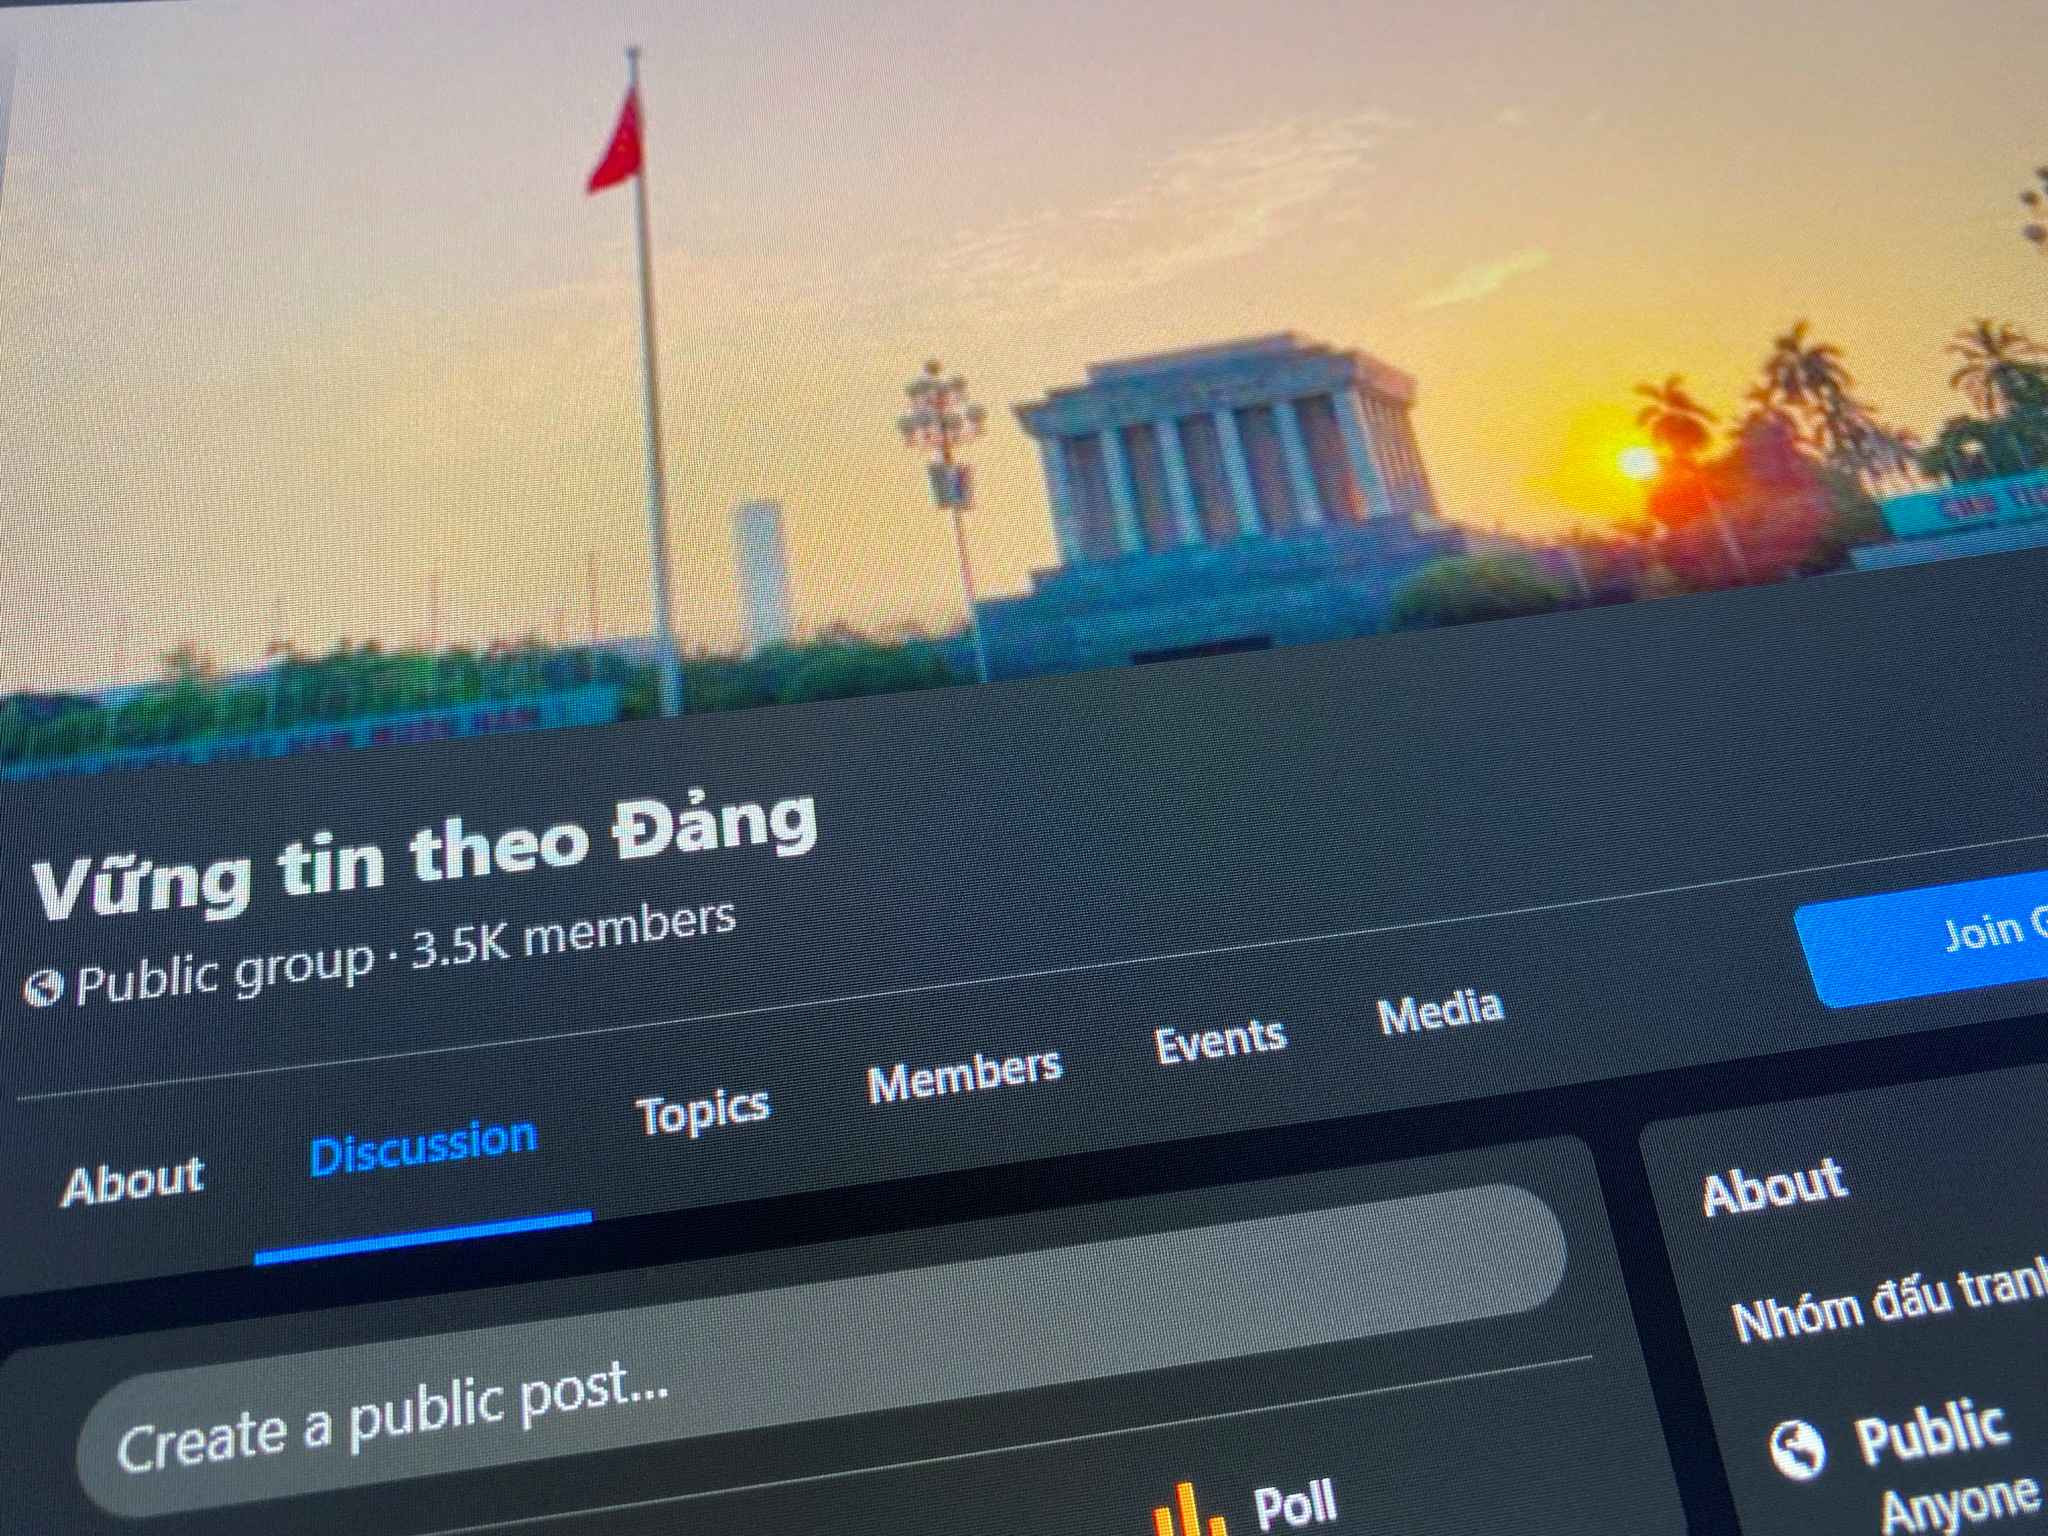 A Facebook page of a group called 'Believe in the Party' which was identified by Vietnamese state media as being controlled by 'Force 47' cyber troops, is displayed on screen in this photo taken July 6, 2021 by REUTERS